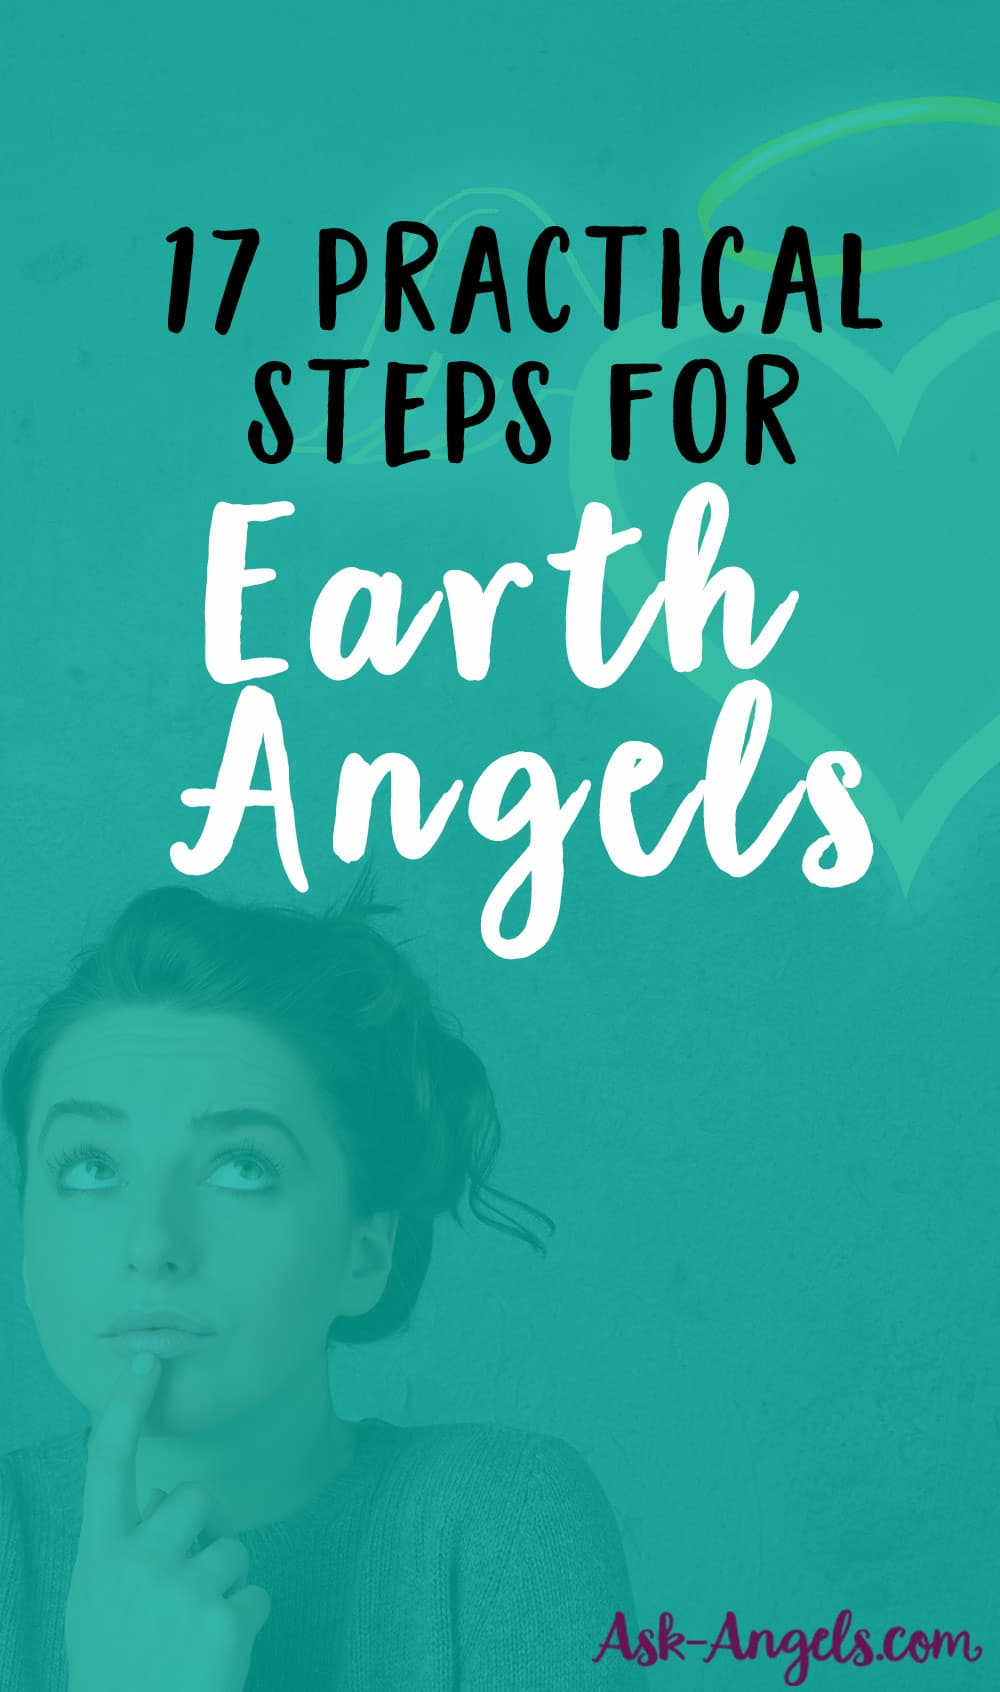 Steps for Earth Angels